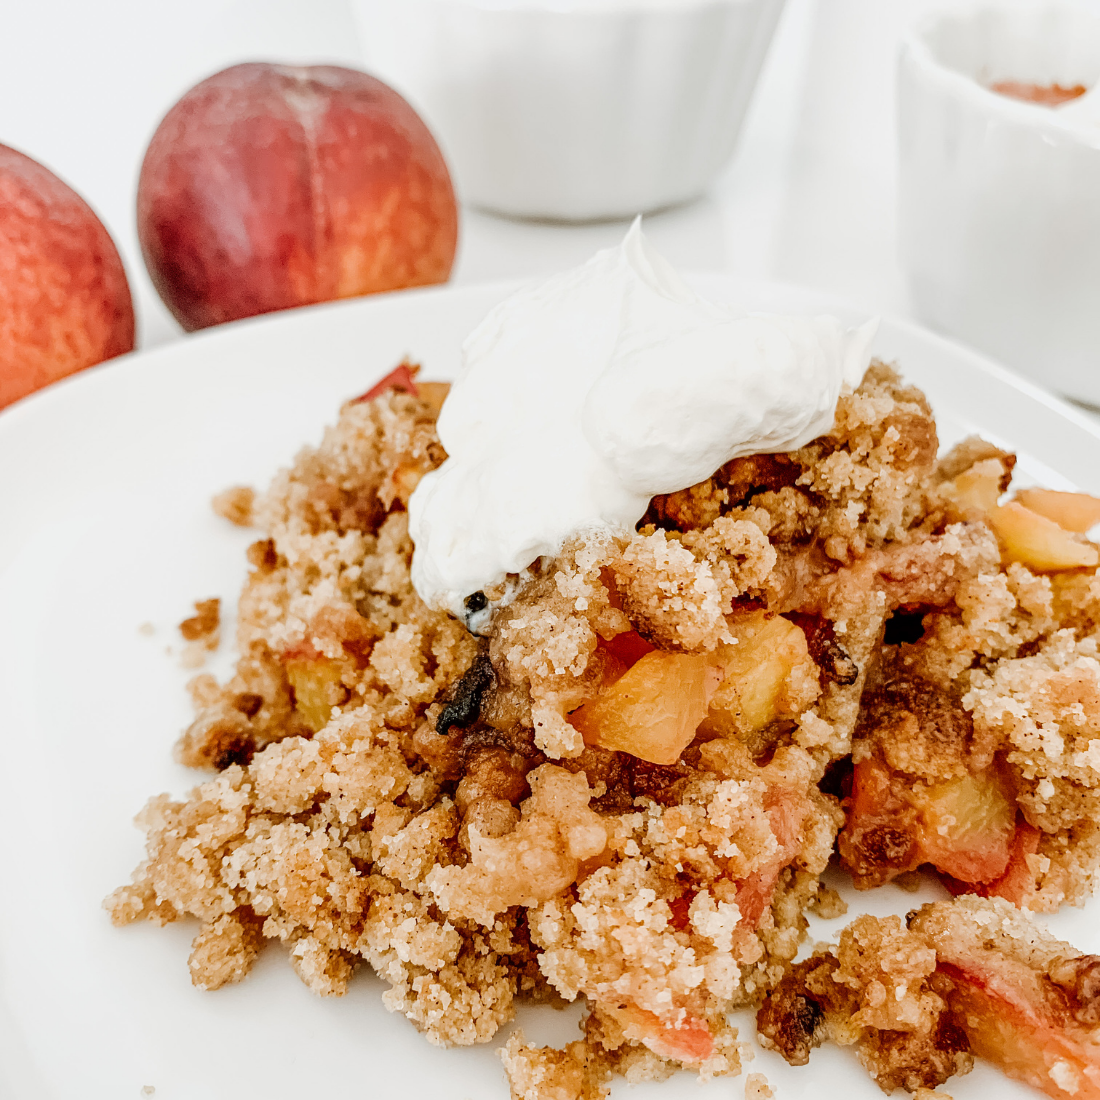 Super easy and delicious peach cobbler recipe, perfect for summer parties